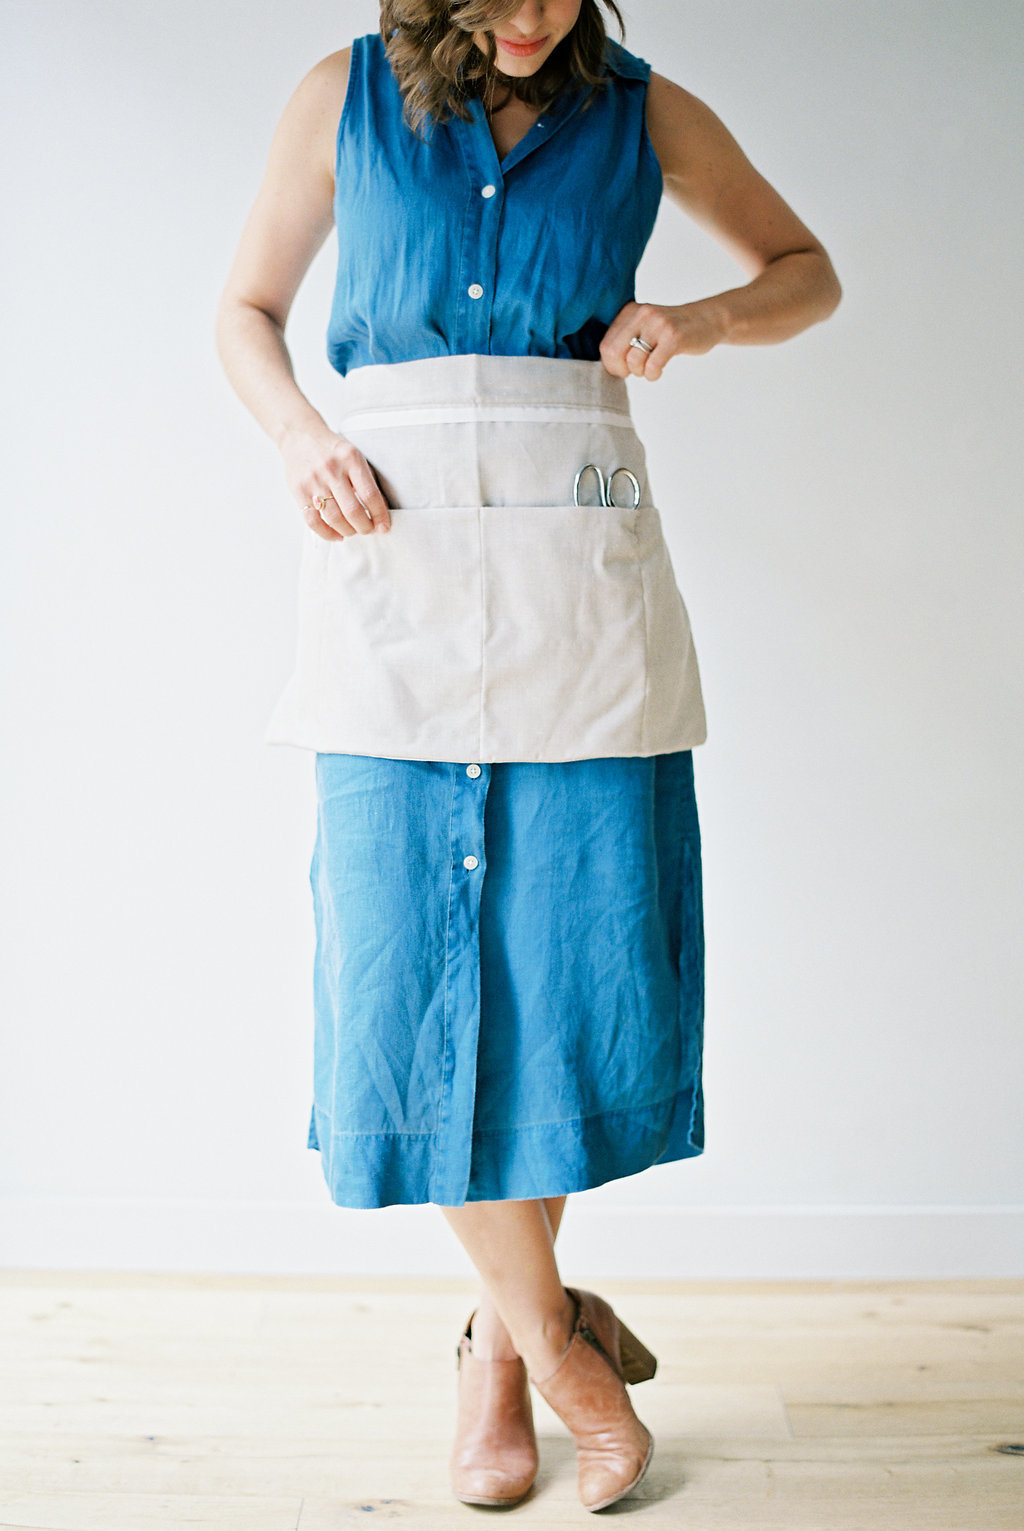 the-makers-apron-melanie-gabrielle-photography-089